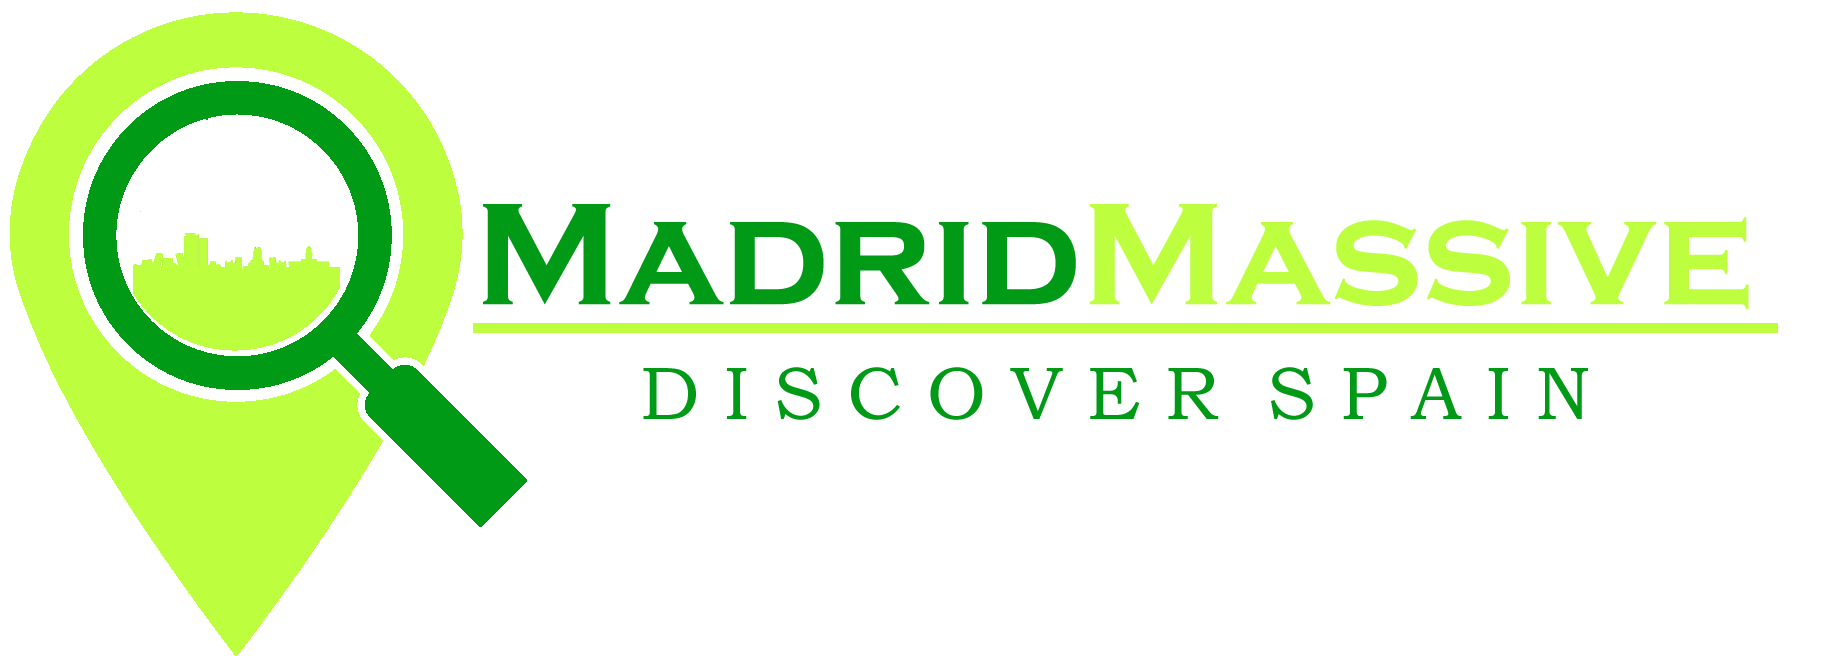 Madrid Massive | Find and Review local Madrid Businesses|